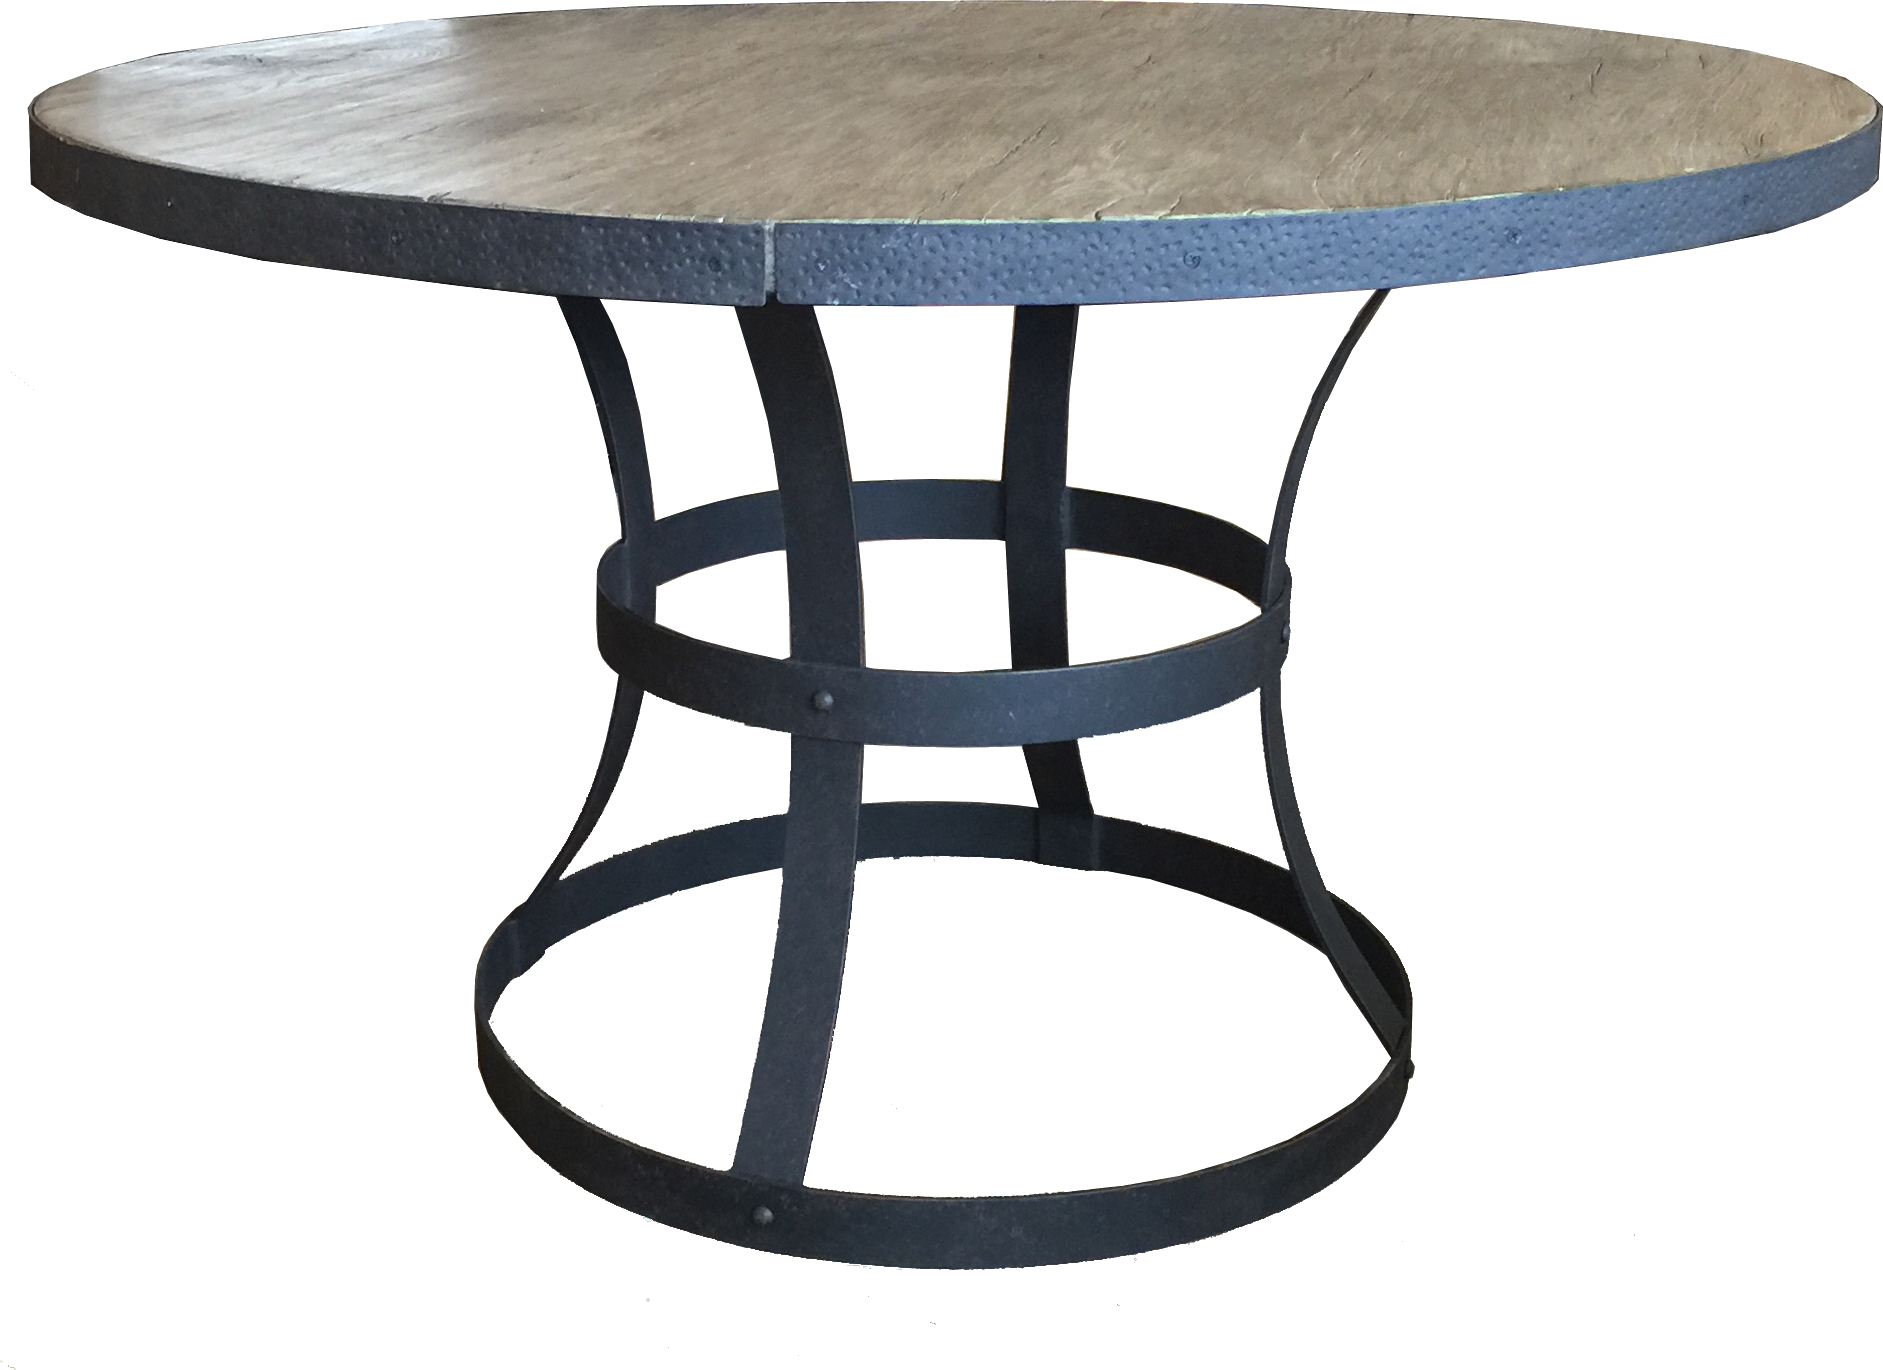 """PL-48R 48"""" Round Dining Table Base   29"""" dia x 28""""  Top - EA-48R Erie 48"""" Round Faux Wood Top Reclaimed Barnwood"""